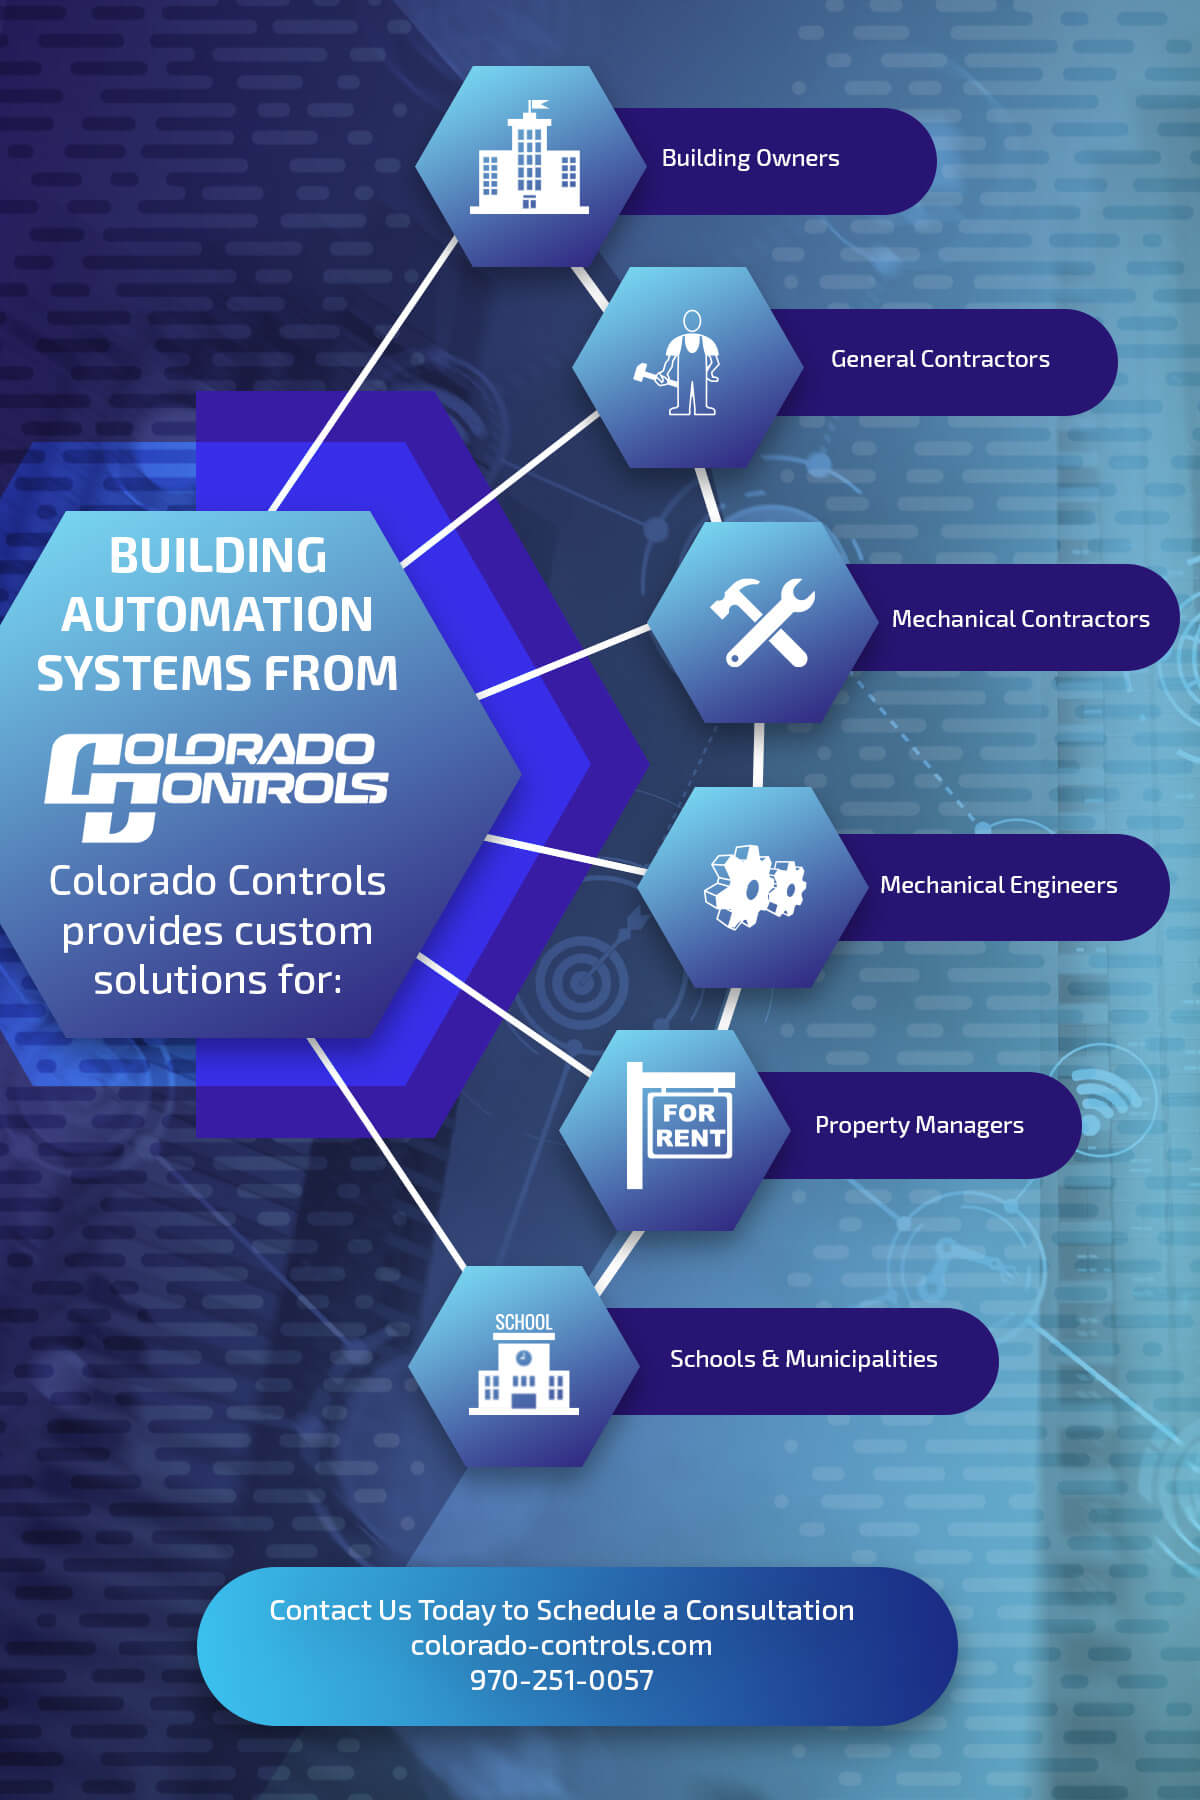 Building Automation Systems from Colorado Controls - Who We Serve